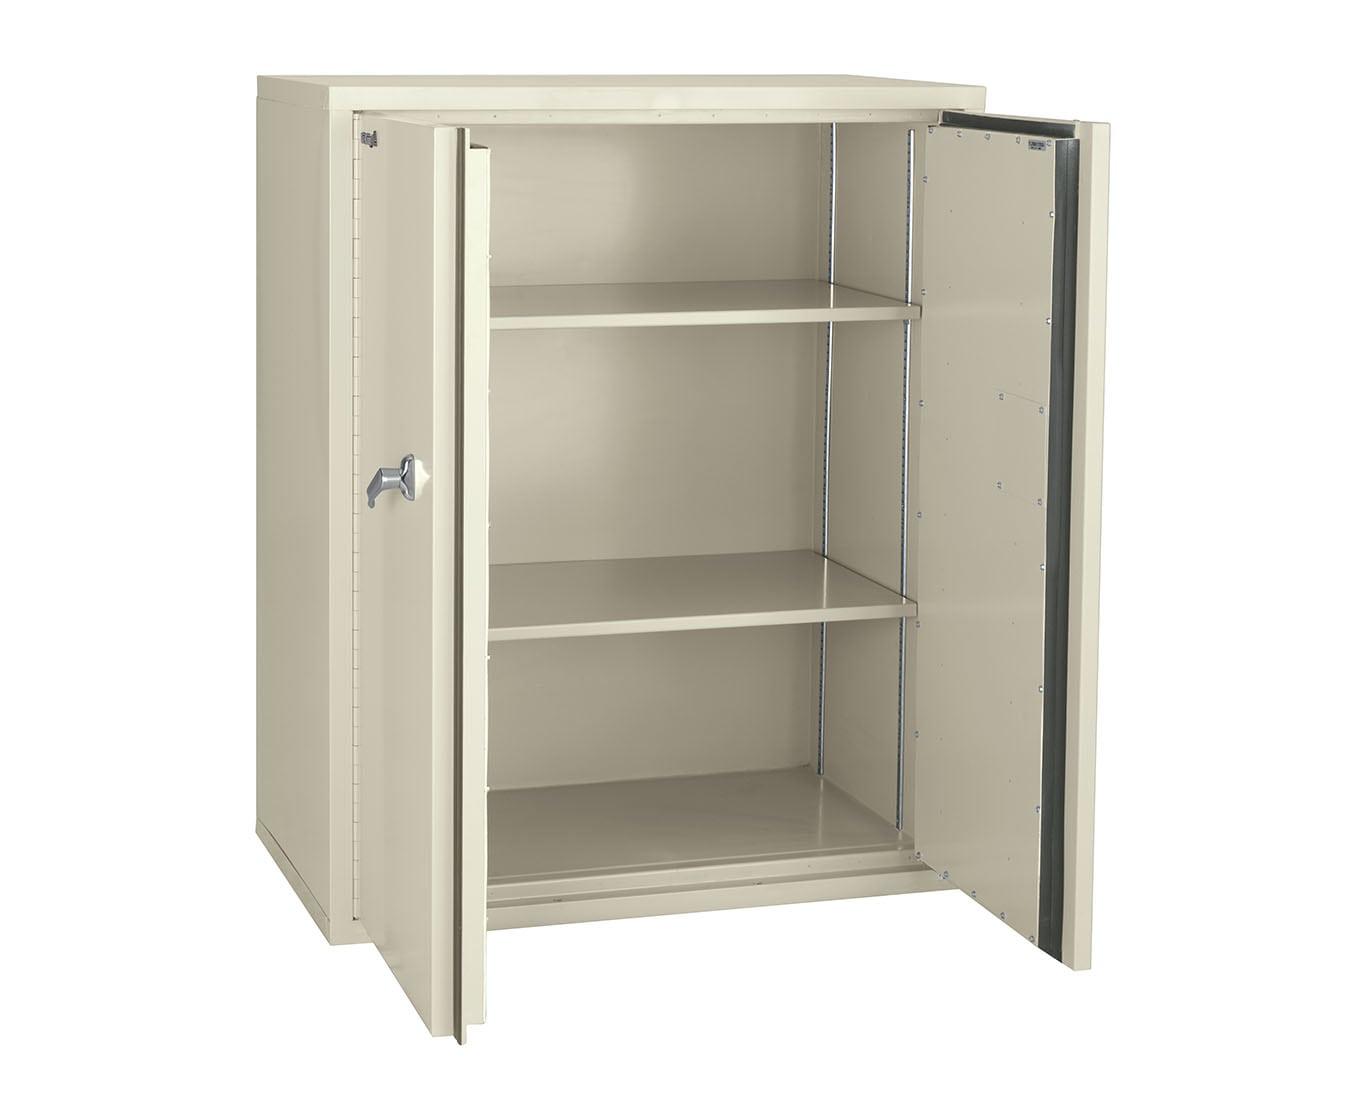 Fire Proof File Storage Cabinets and Safes  sc 1 st  Total Corporate Solutions & Filing u0026 Storage Cabinets   Total Corporate Solutions